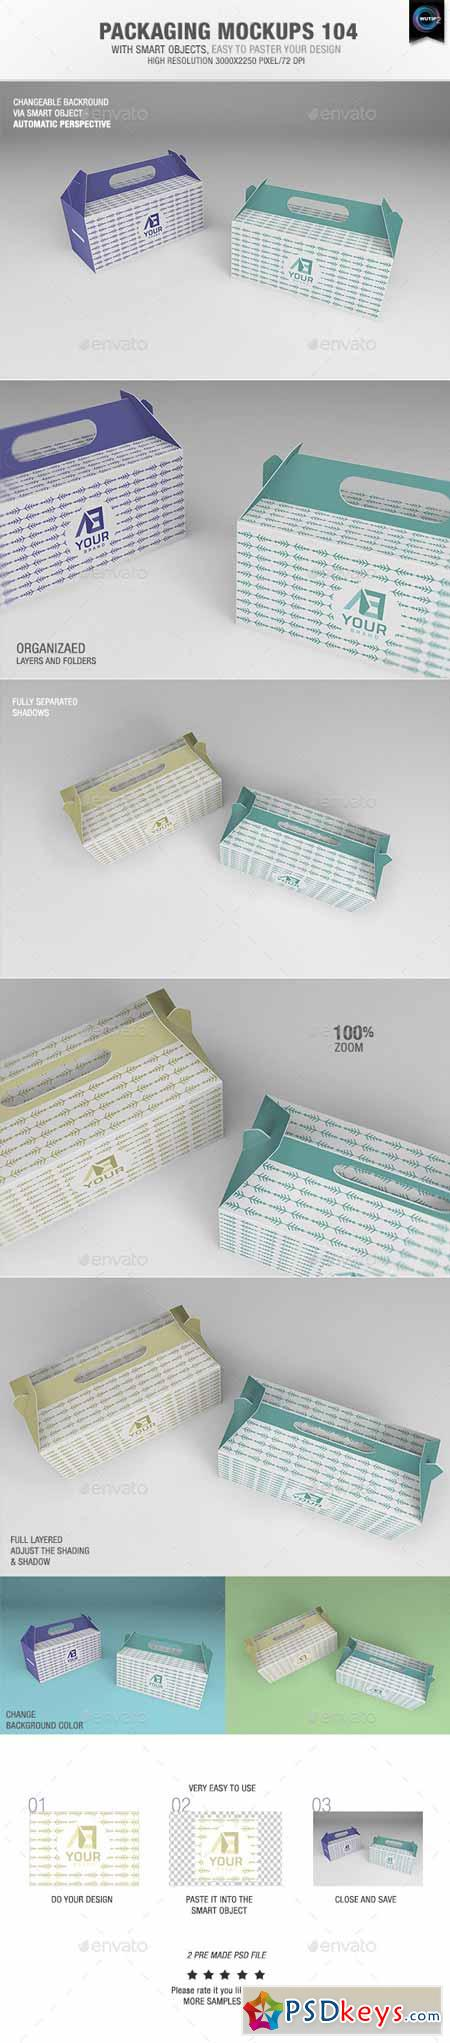 Packaging Mock-ups 104 10734163